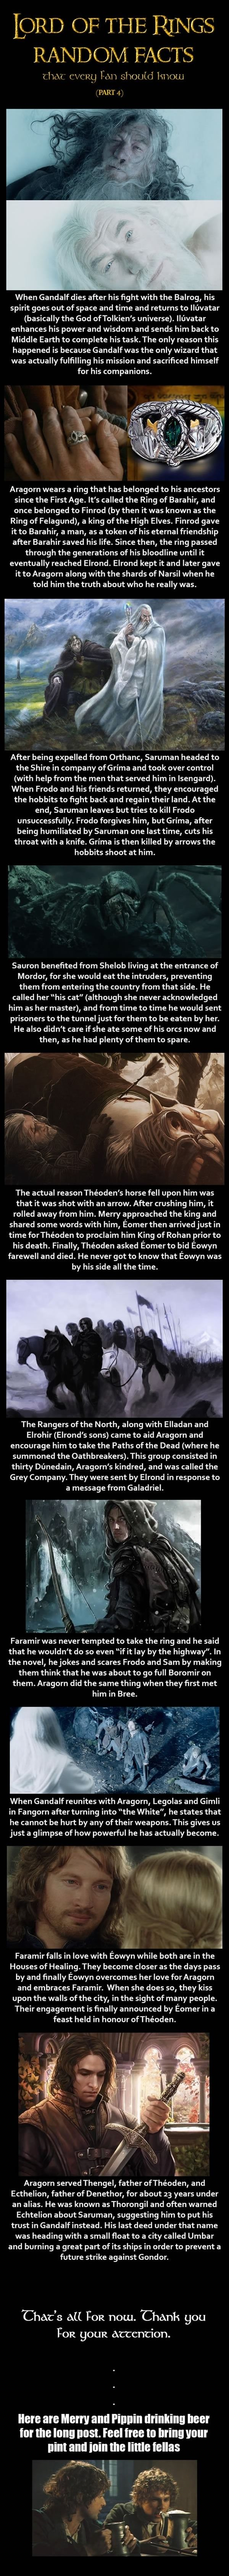 LOTR Facts part 4